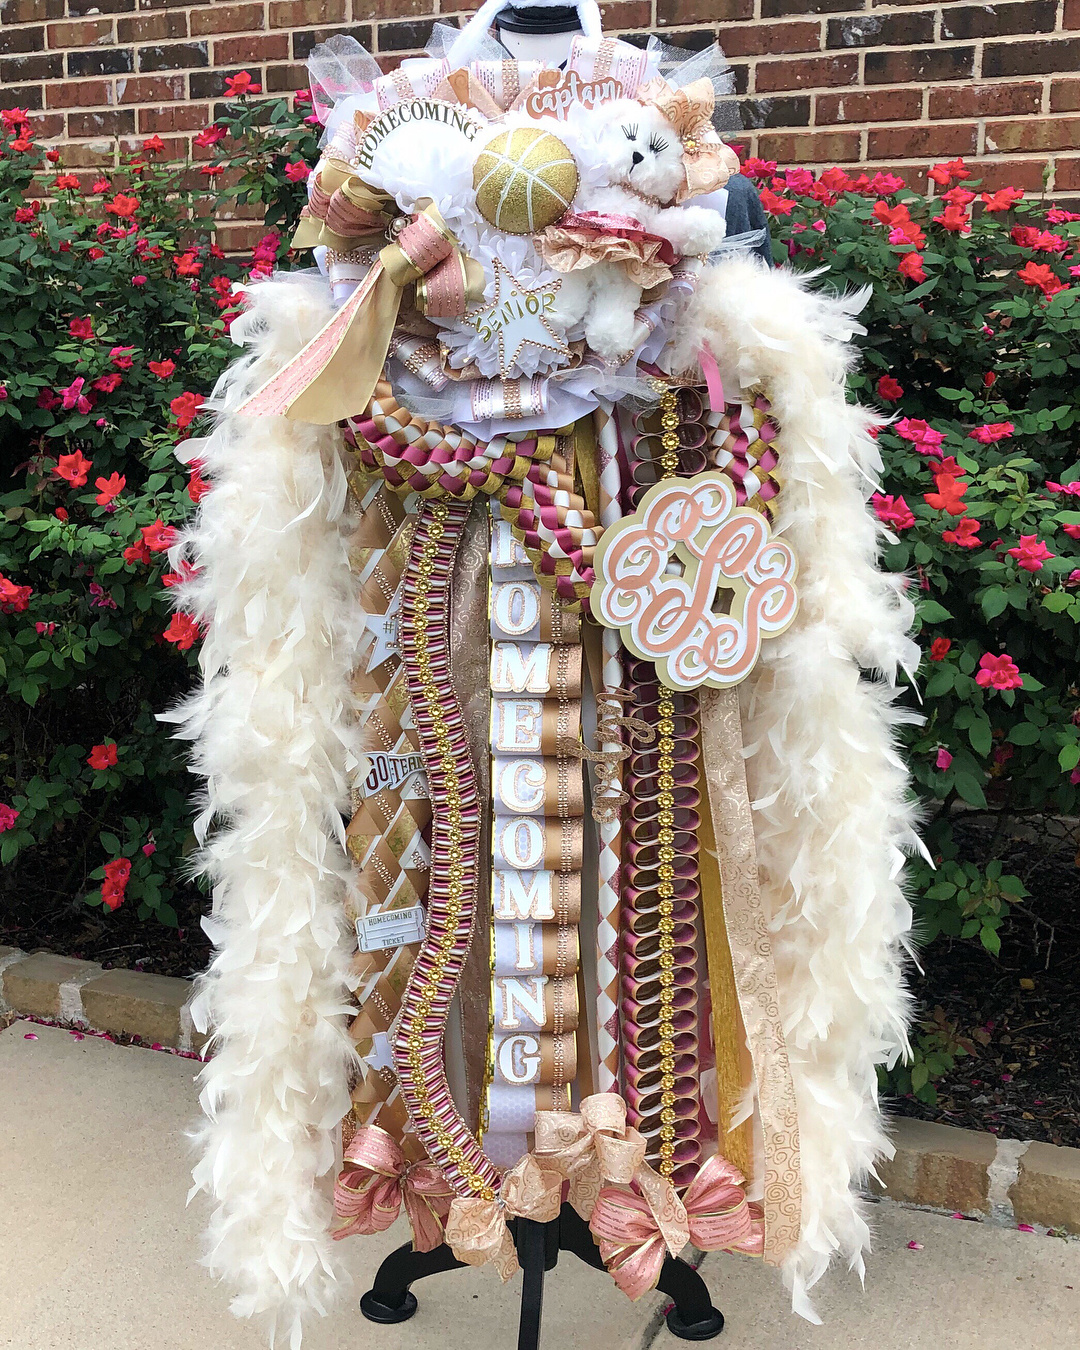 Christmas Homecoming Mum.15 Of The Most Outrageous Homecoming Mums We Ve Ever Seen